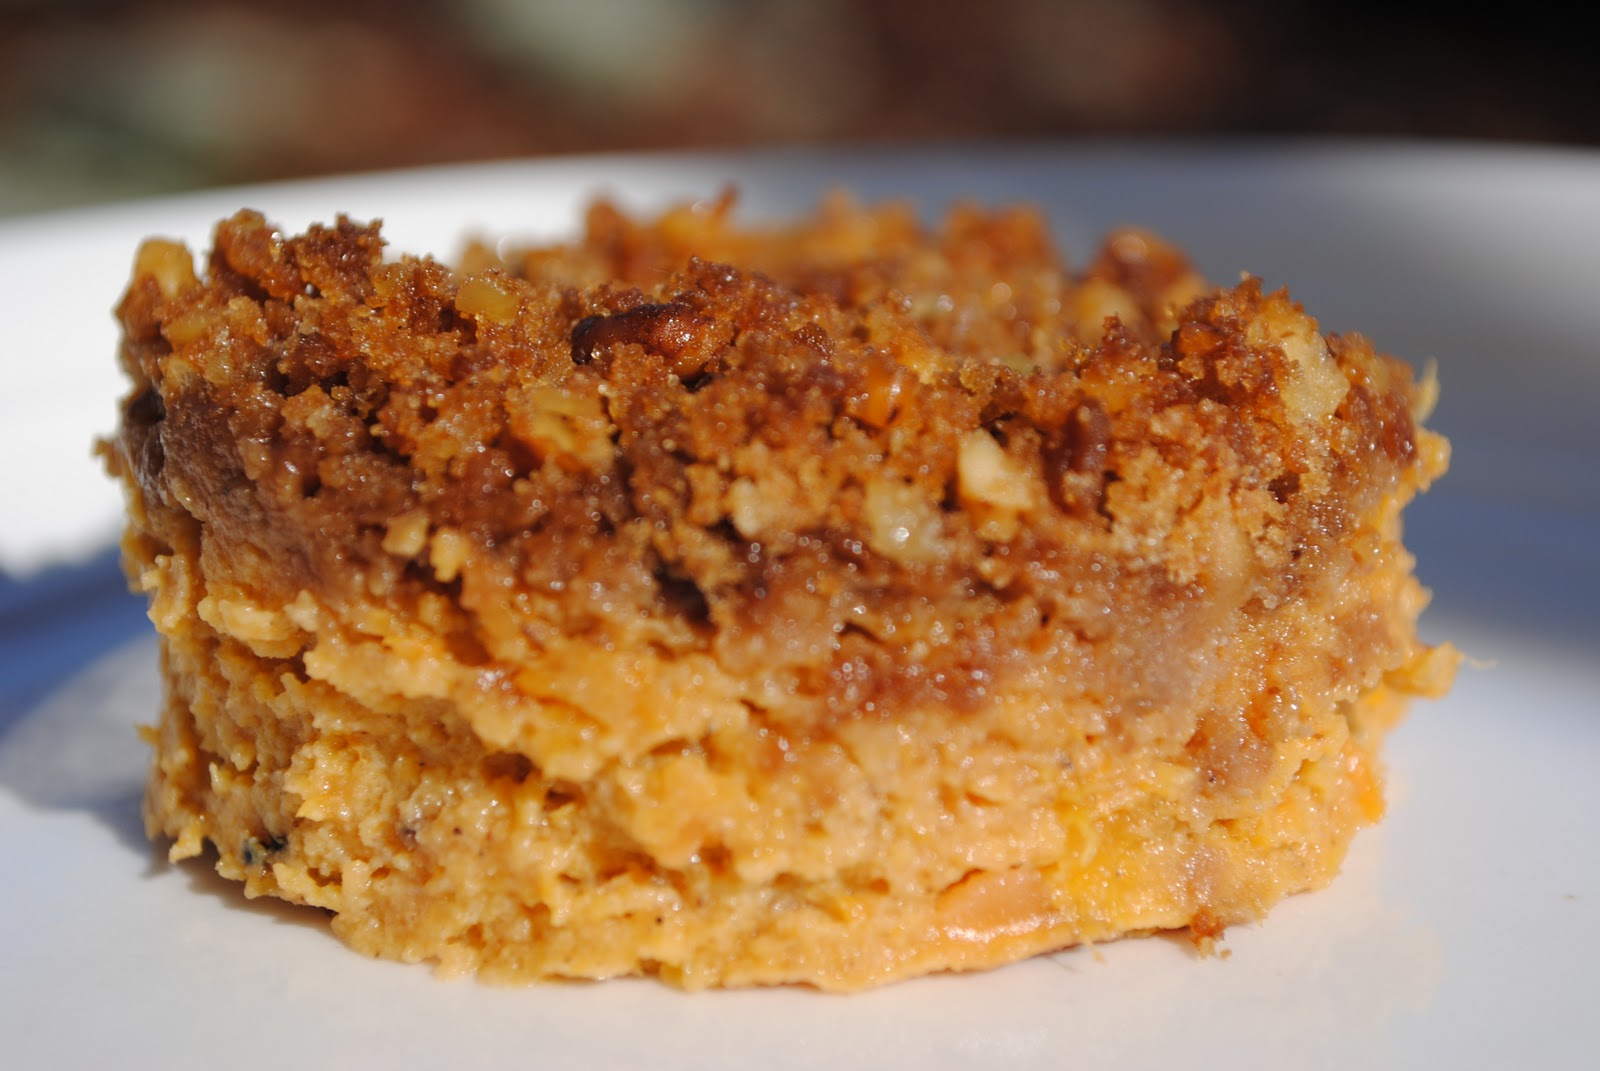 ... SWEET POTATO PUDDING WITH PECAN GINGERSNAP TOPPING and PARSNIP POTATO